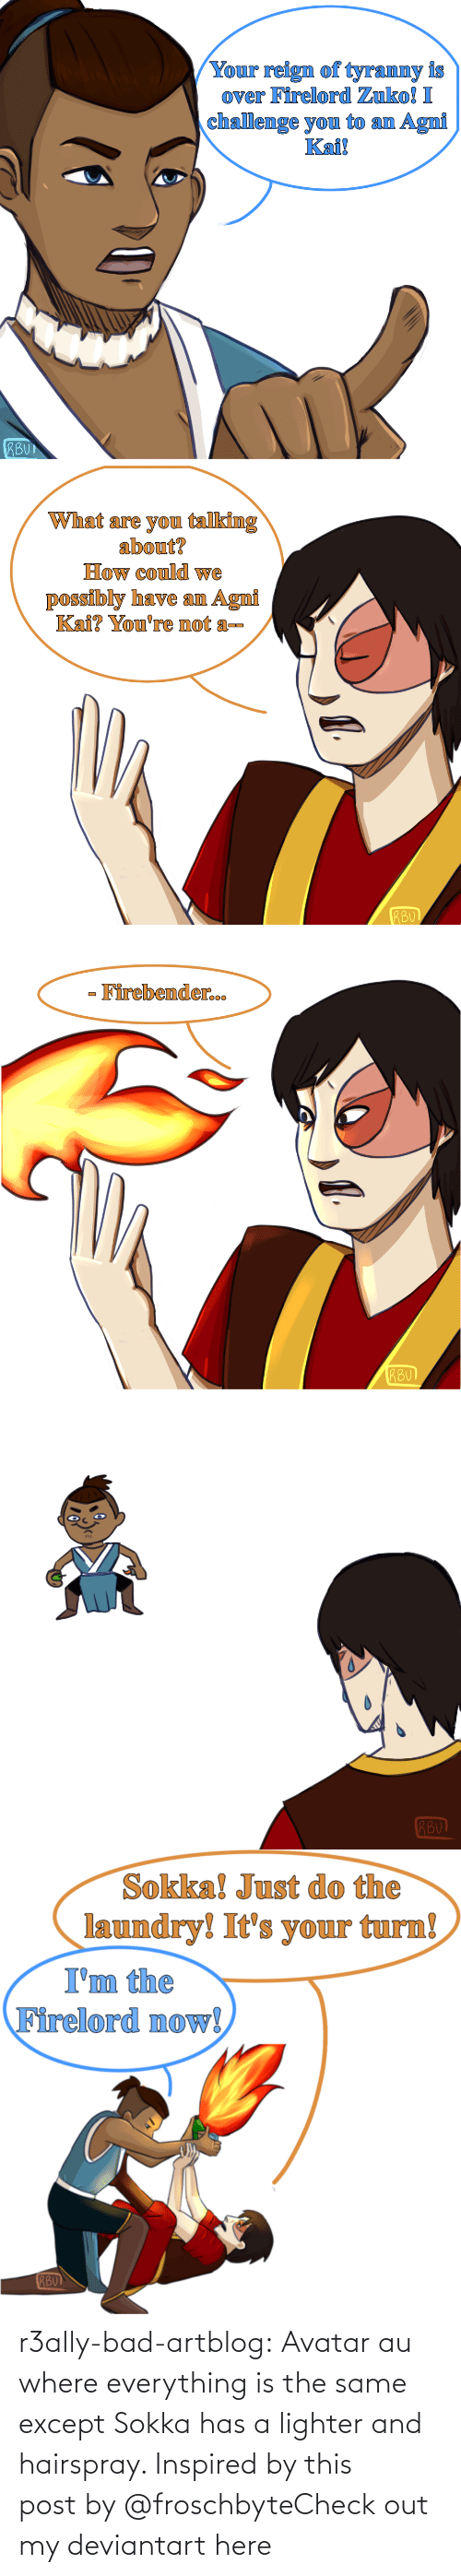 Bad: r3ally-bad-artblog:  Avatar au where everything is the same except Sokka has a lighter and hairspray. Inspired by this post by @froschbyteCheck out my deviantart here